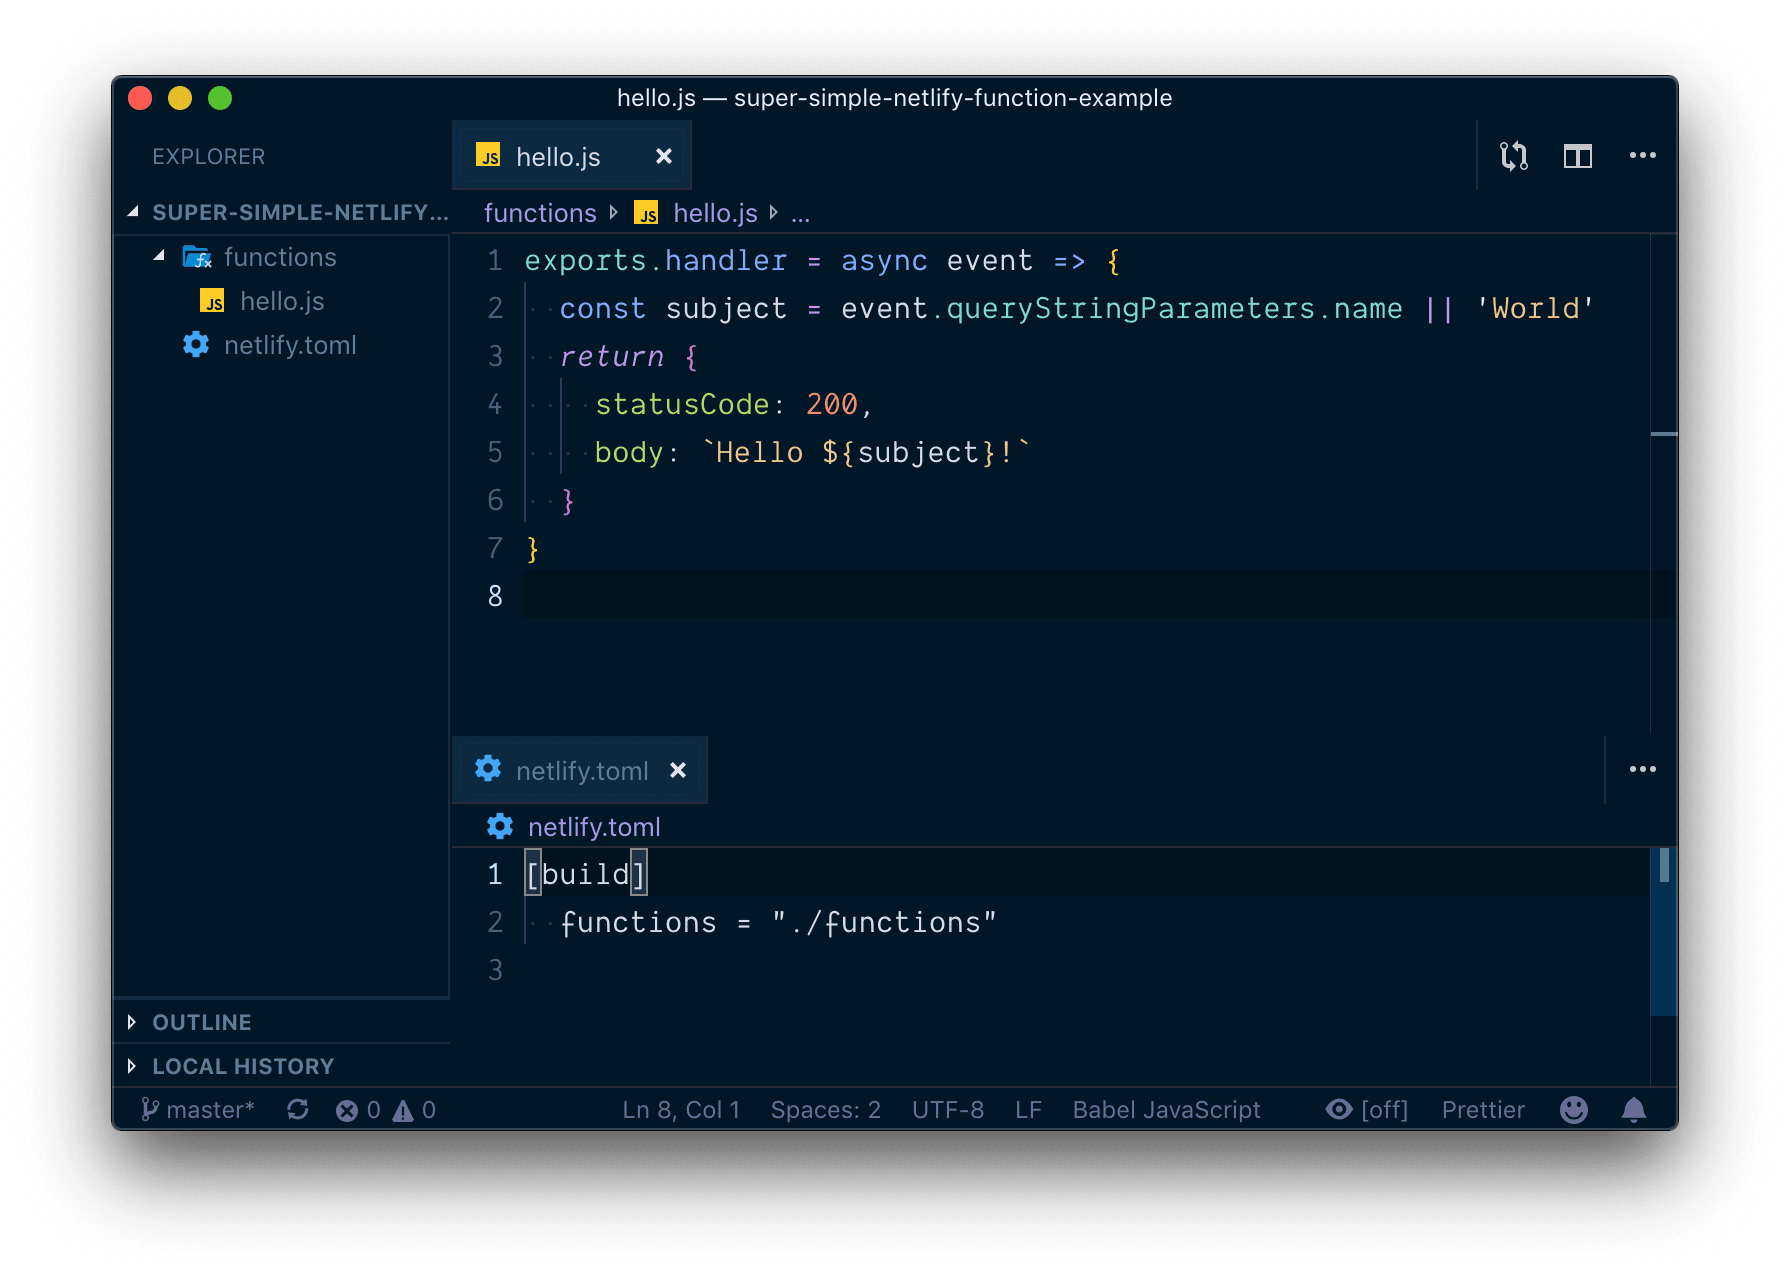 The above code in an editor